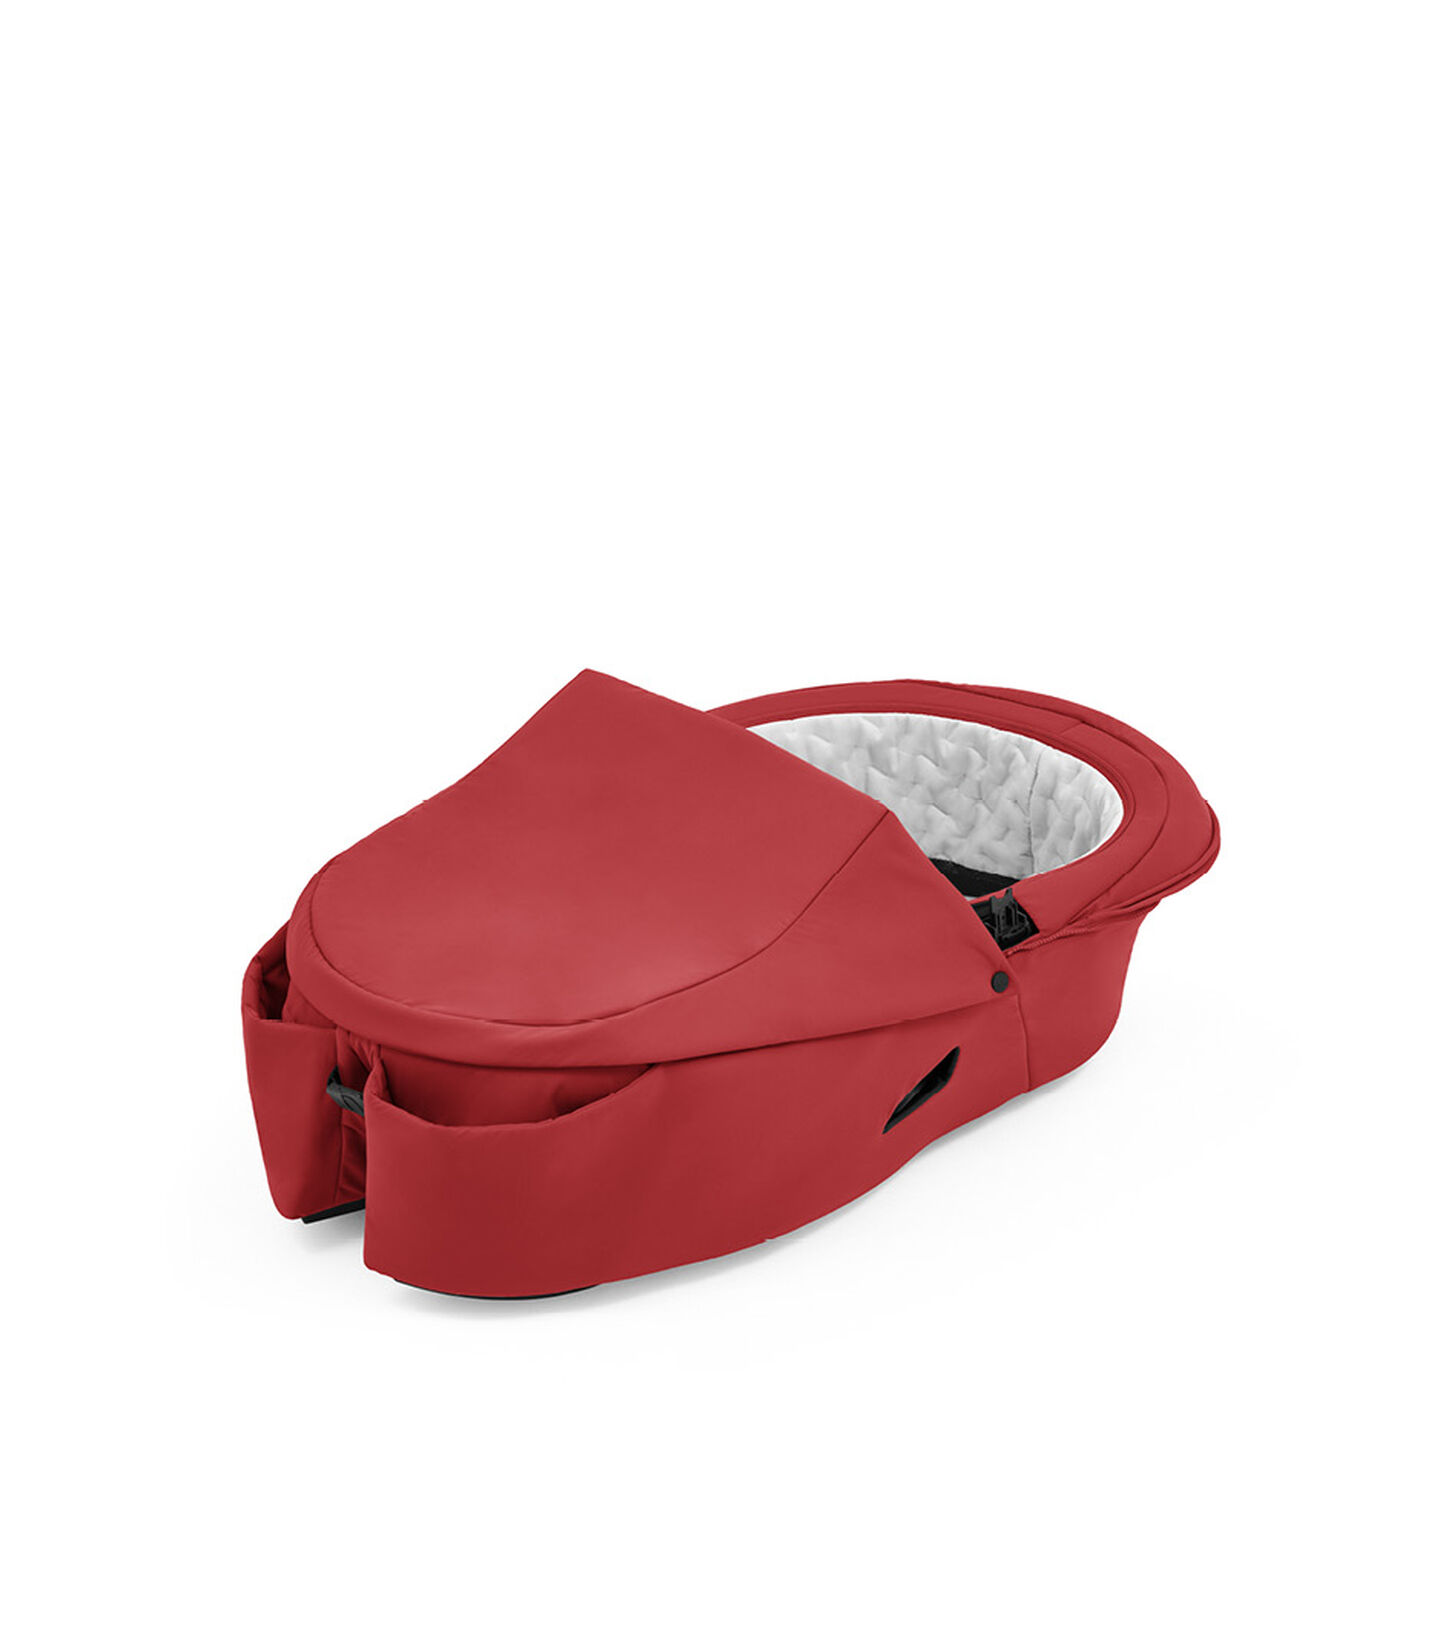 Stokke® Xplory® X liggedel Ruby Red, Ruby Red, mainview view 1